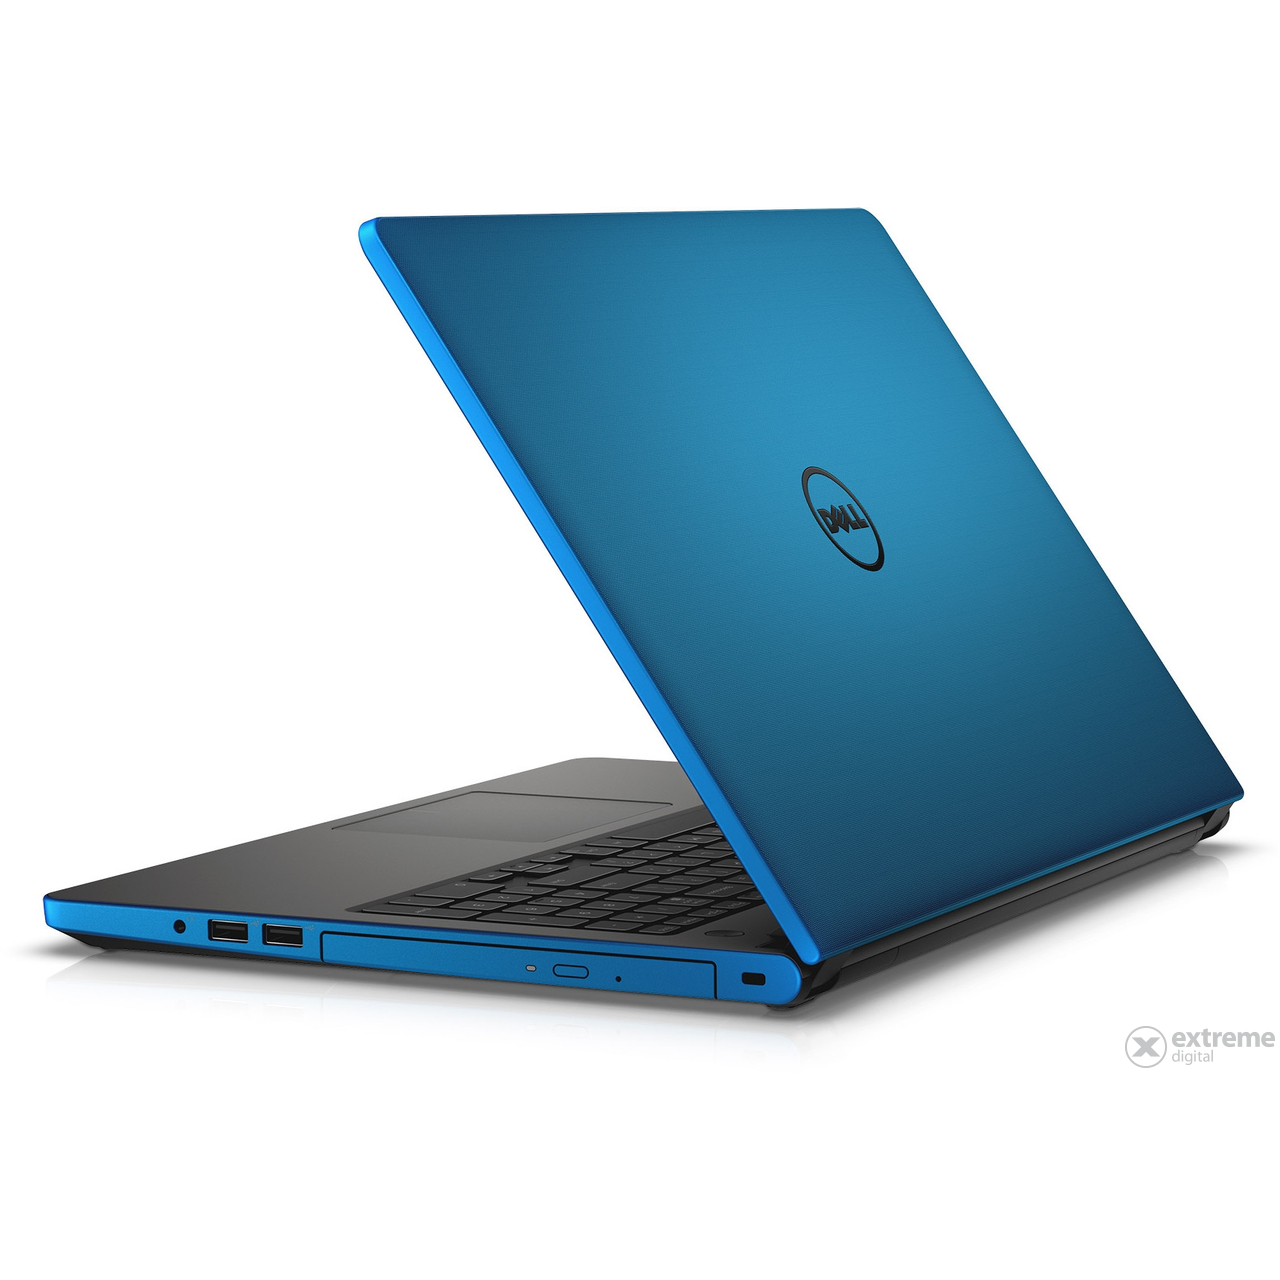 dell-inspiron-5558-181073-notebook-kek-windows-8-1-operacios-rendszer_3216aca8.jpg